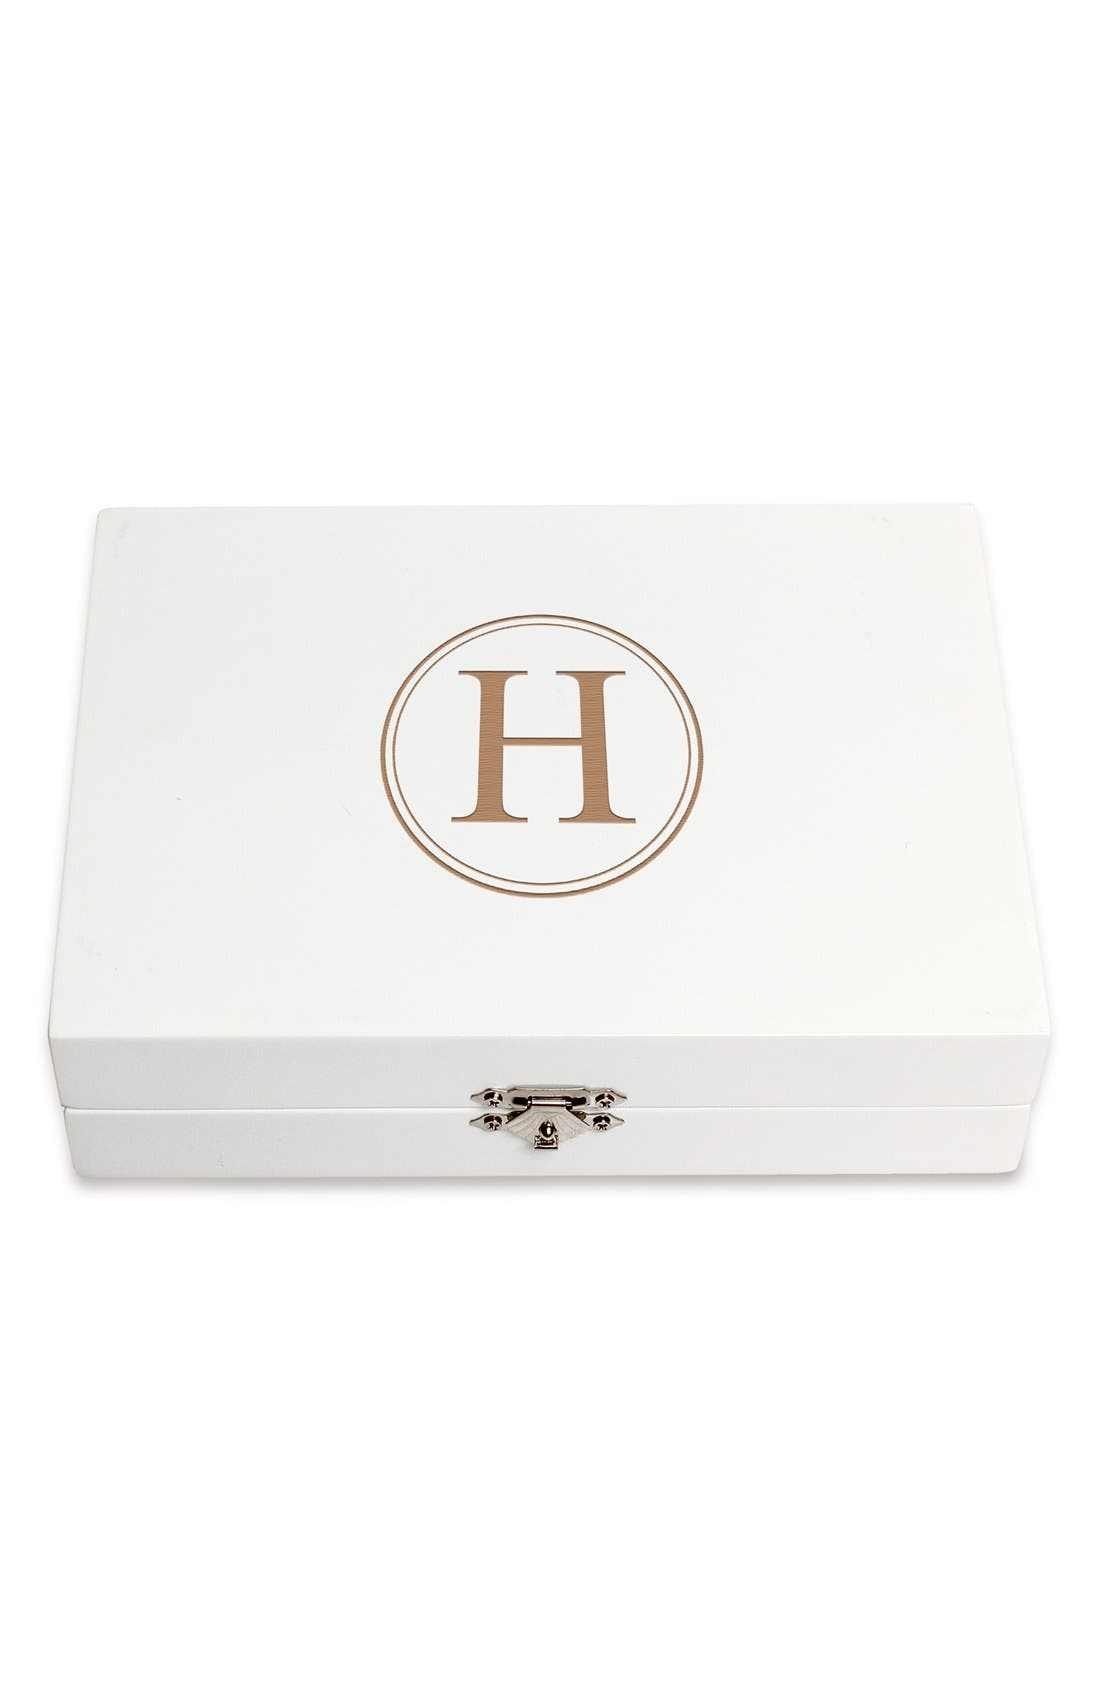 Monogram Wooden Jewelry Box,                             Main thumbnail 37, color,